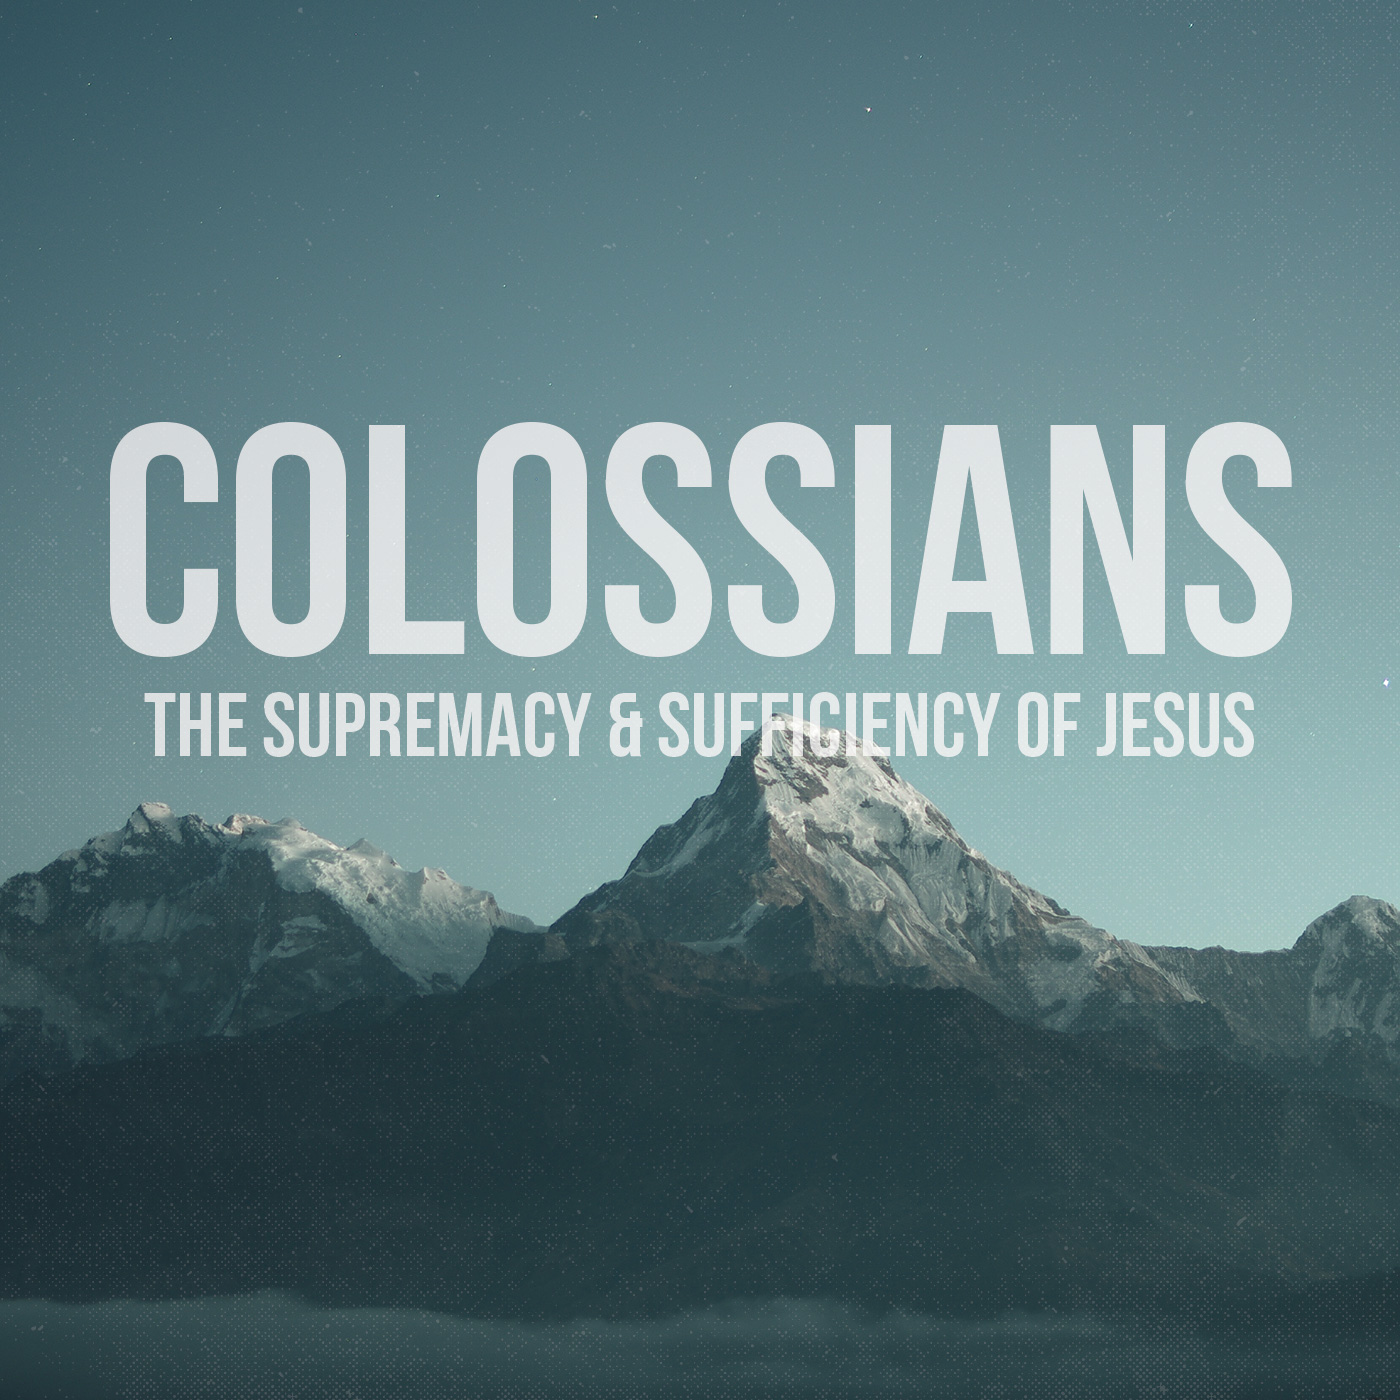 Colossians - The Supremacy & Sufficiency of Jesus